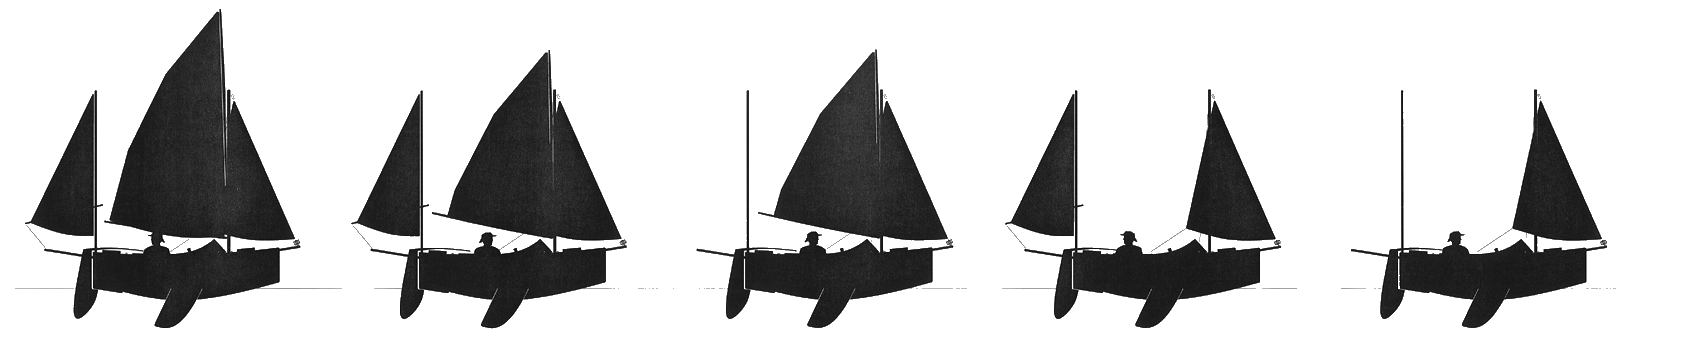 [ img - CE_Dinghy-Sails.png ]